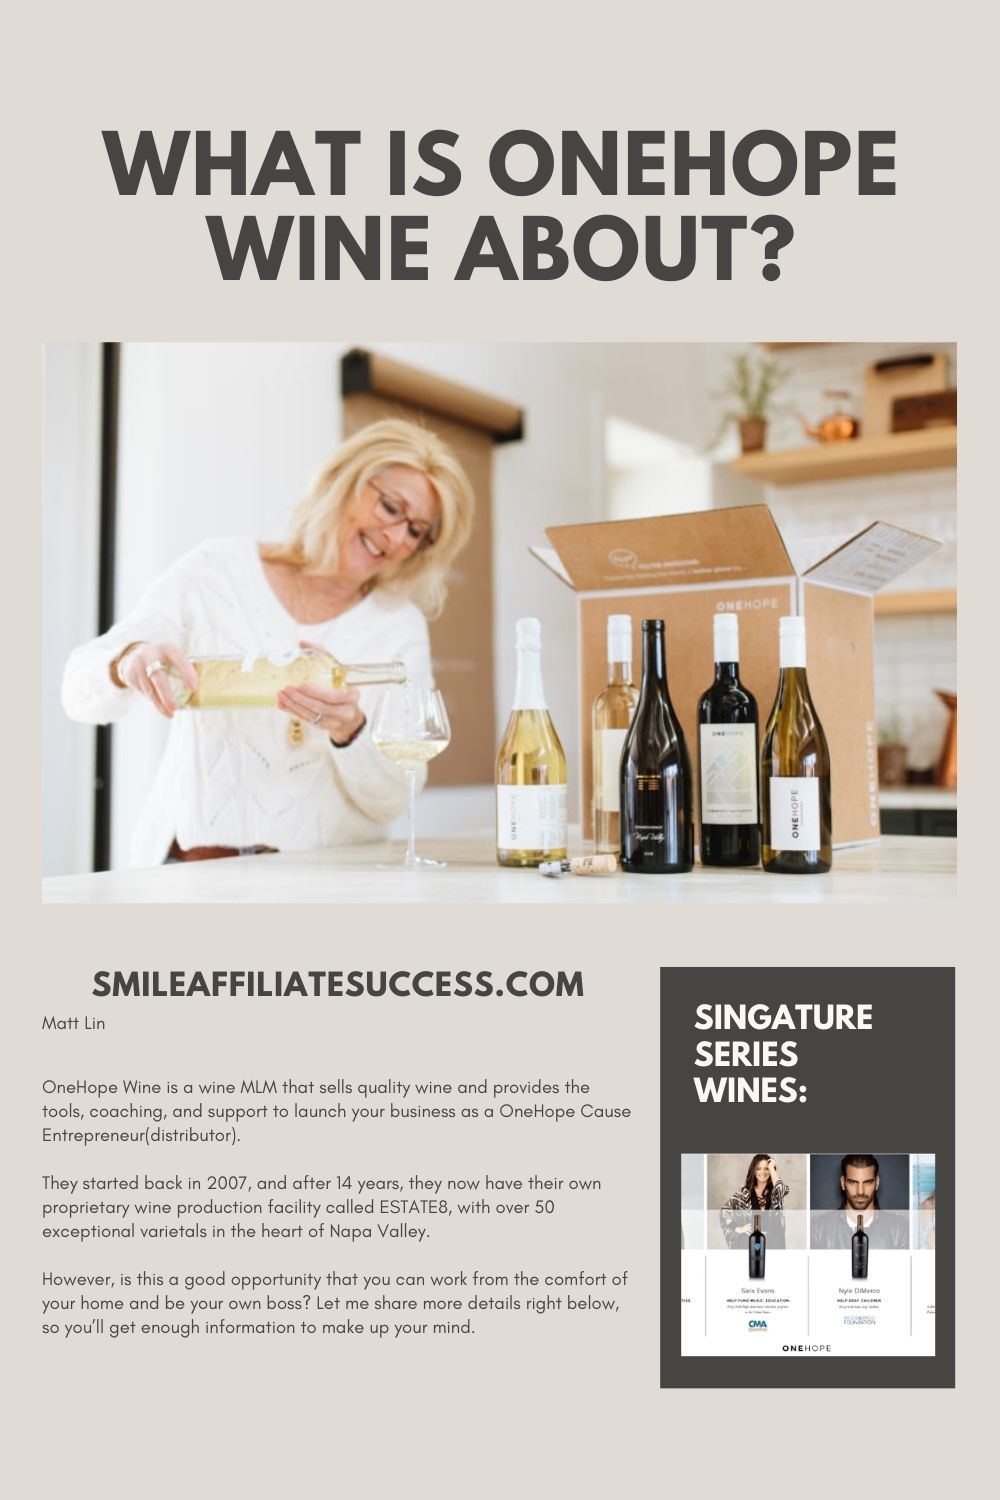 What Is OneHope Wine About?